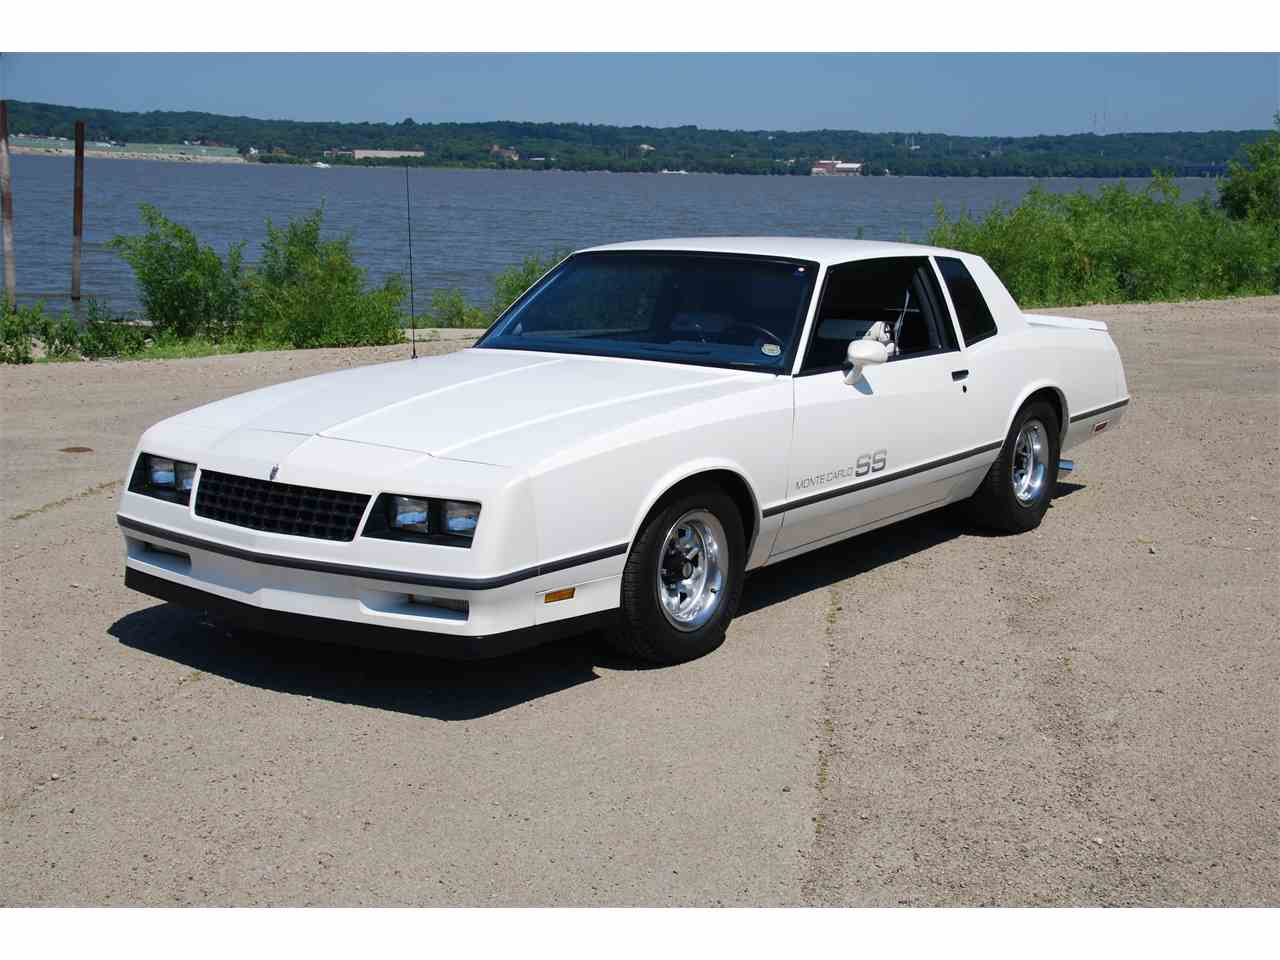 Large Picture of 1983 Chevrolet Monte Carlo SS located in East Peoria Illinois - $10,500.00 - LVHX